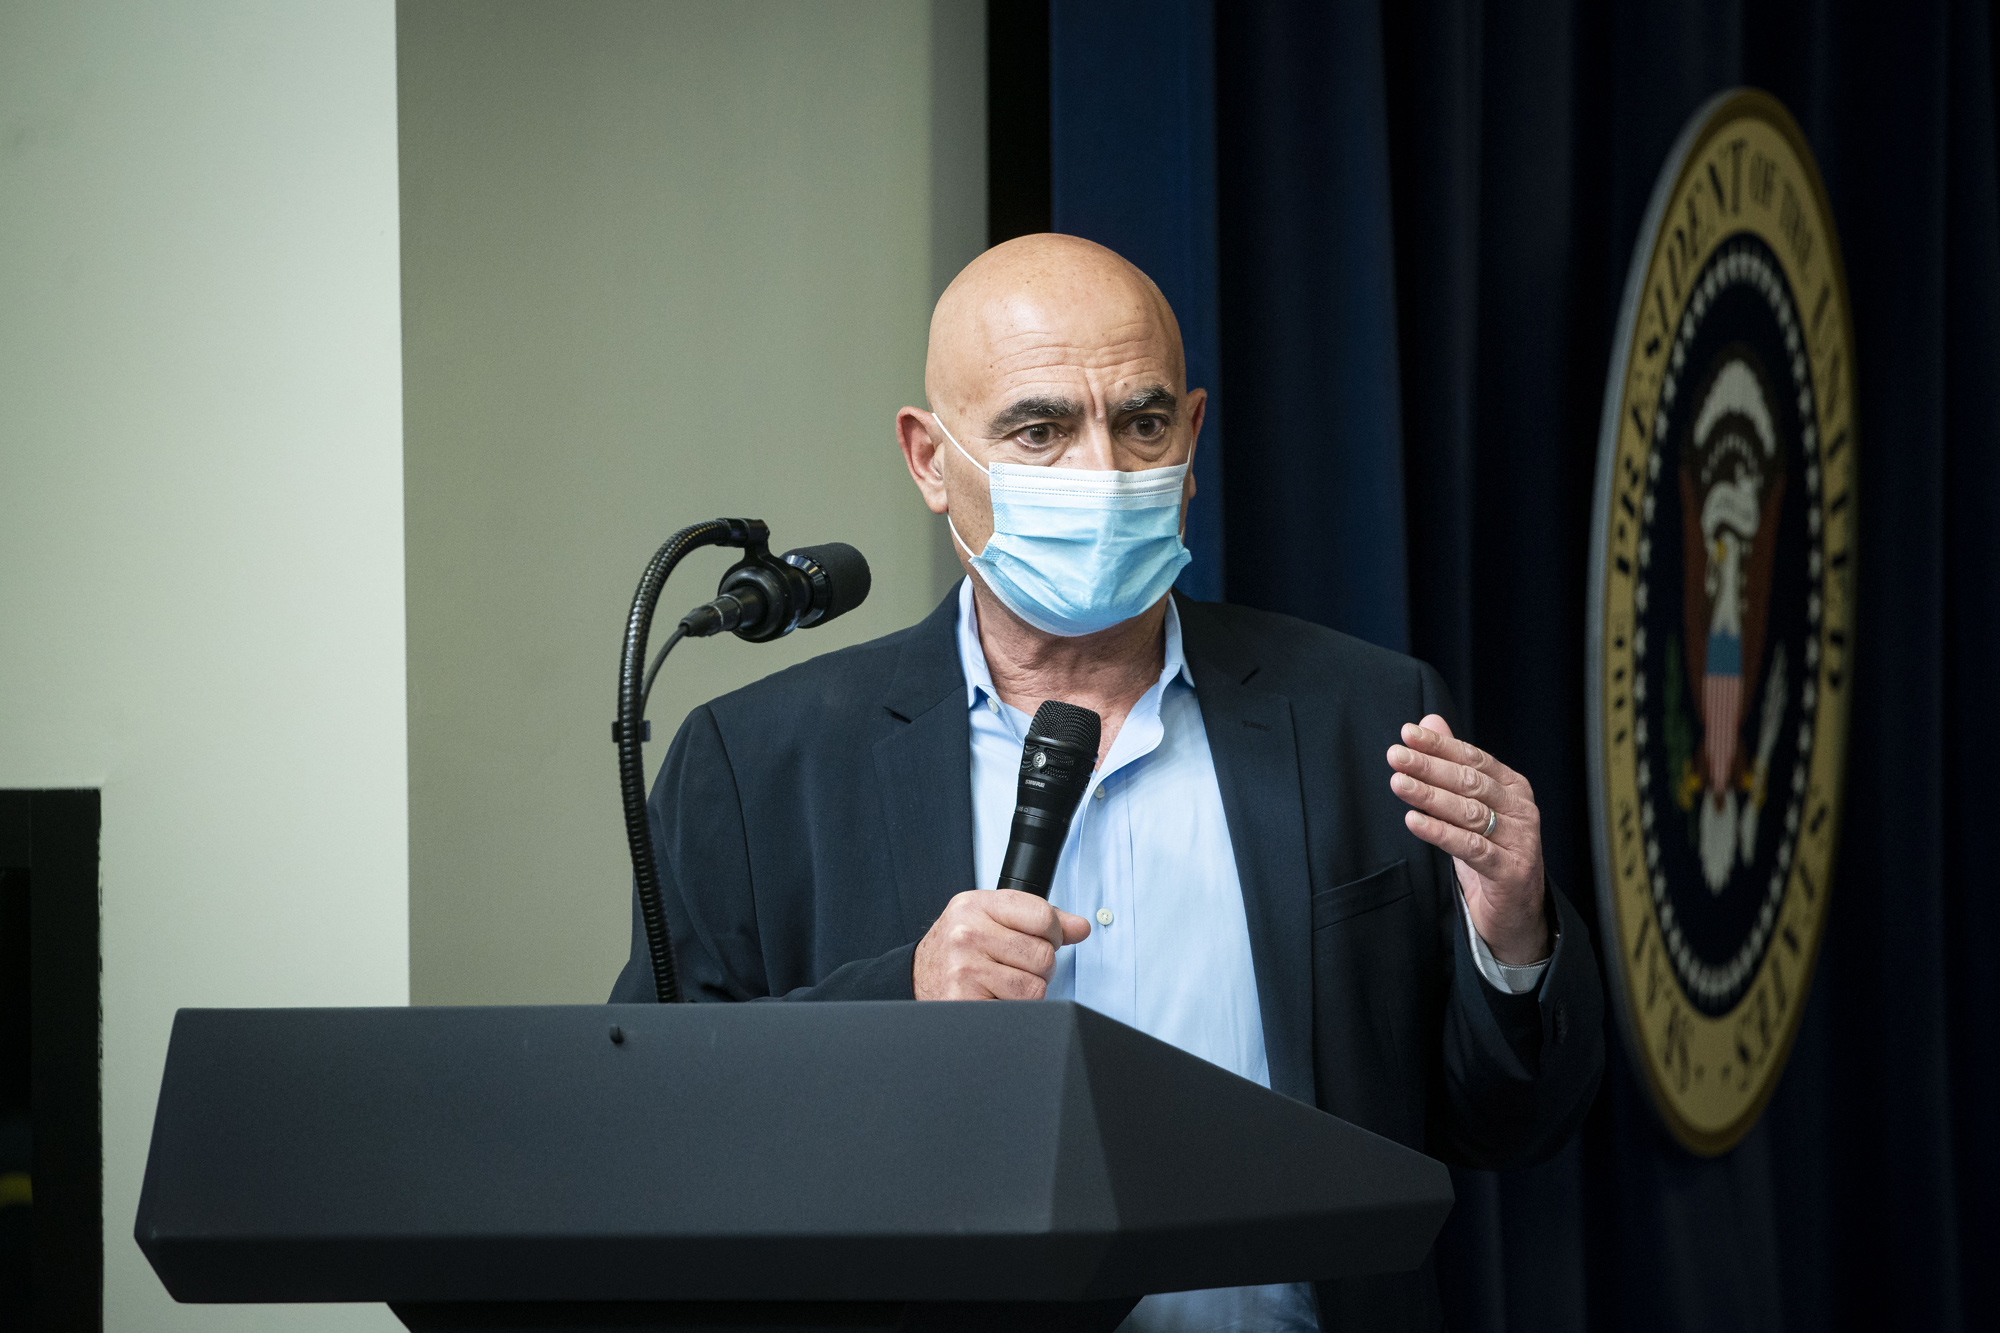 Moncef Slaoui, chief adviser for the Defense Department's Project Warp Speed, speaks during an Operation Warp Speed vaccine summit at the White House in Washington, D.C., on December 8.